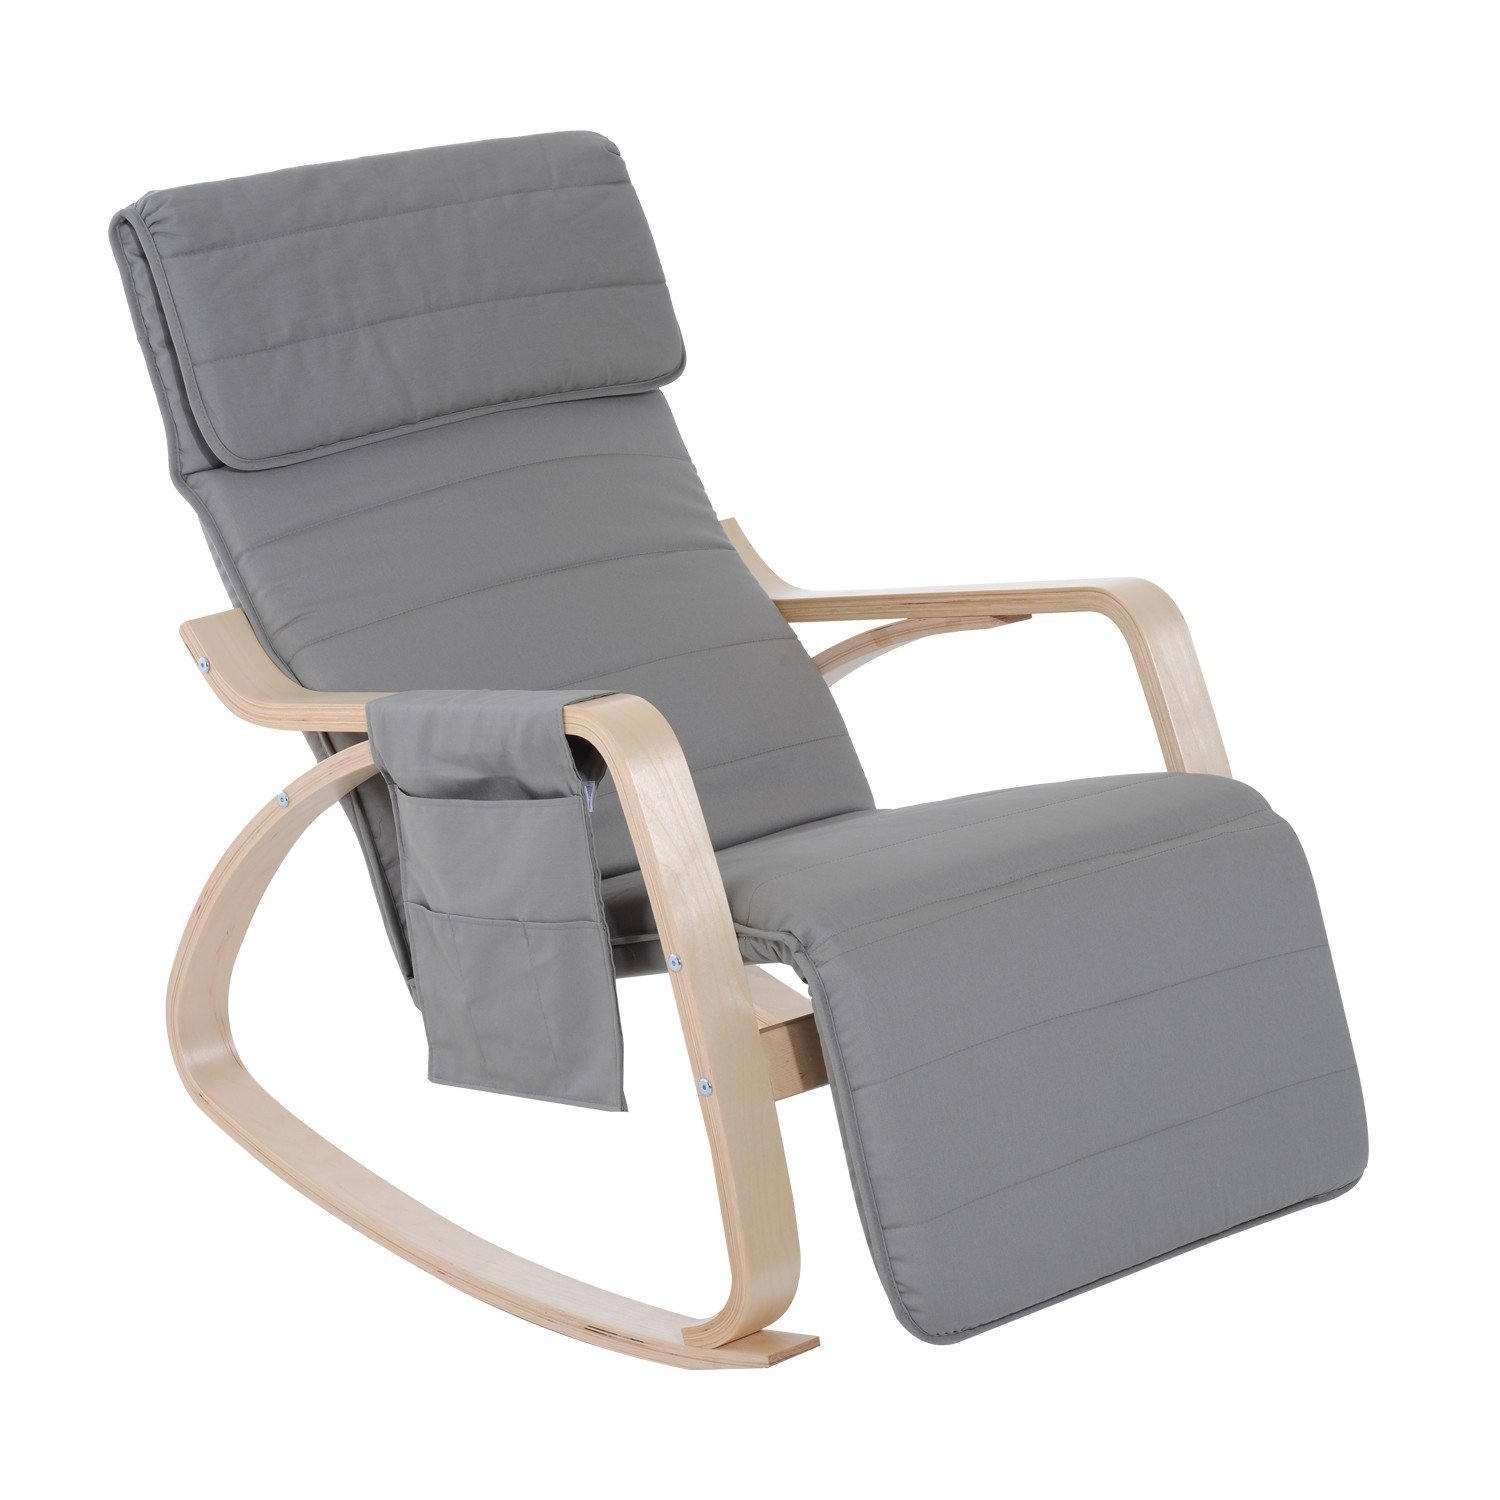 Homcom Rocking Chair W/adjustable Footrest & Side Pocket Grey For Rocking Chairs With Footrest (#7 of 15)